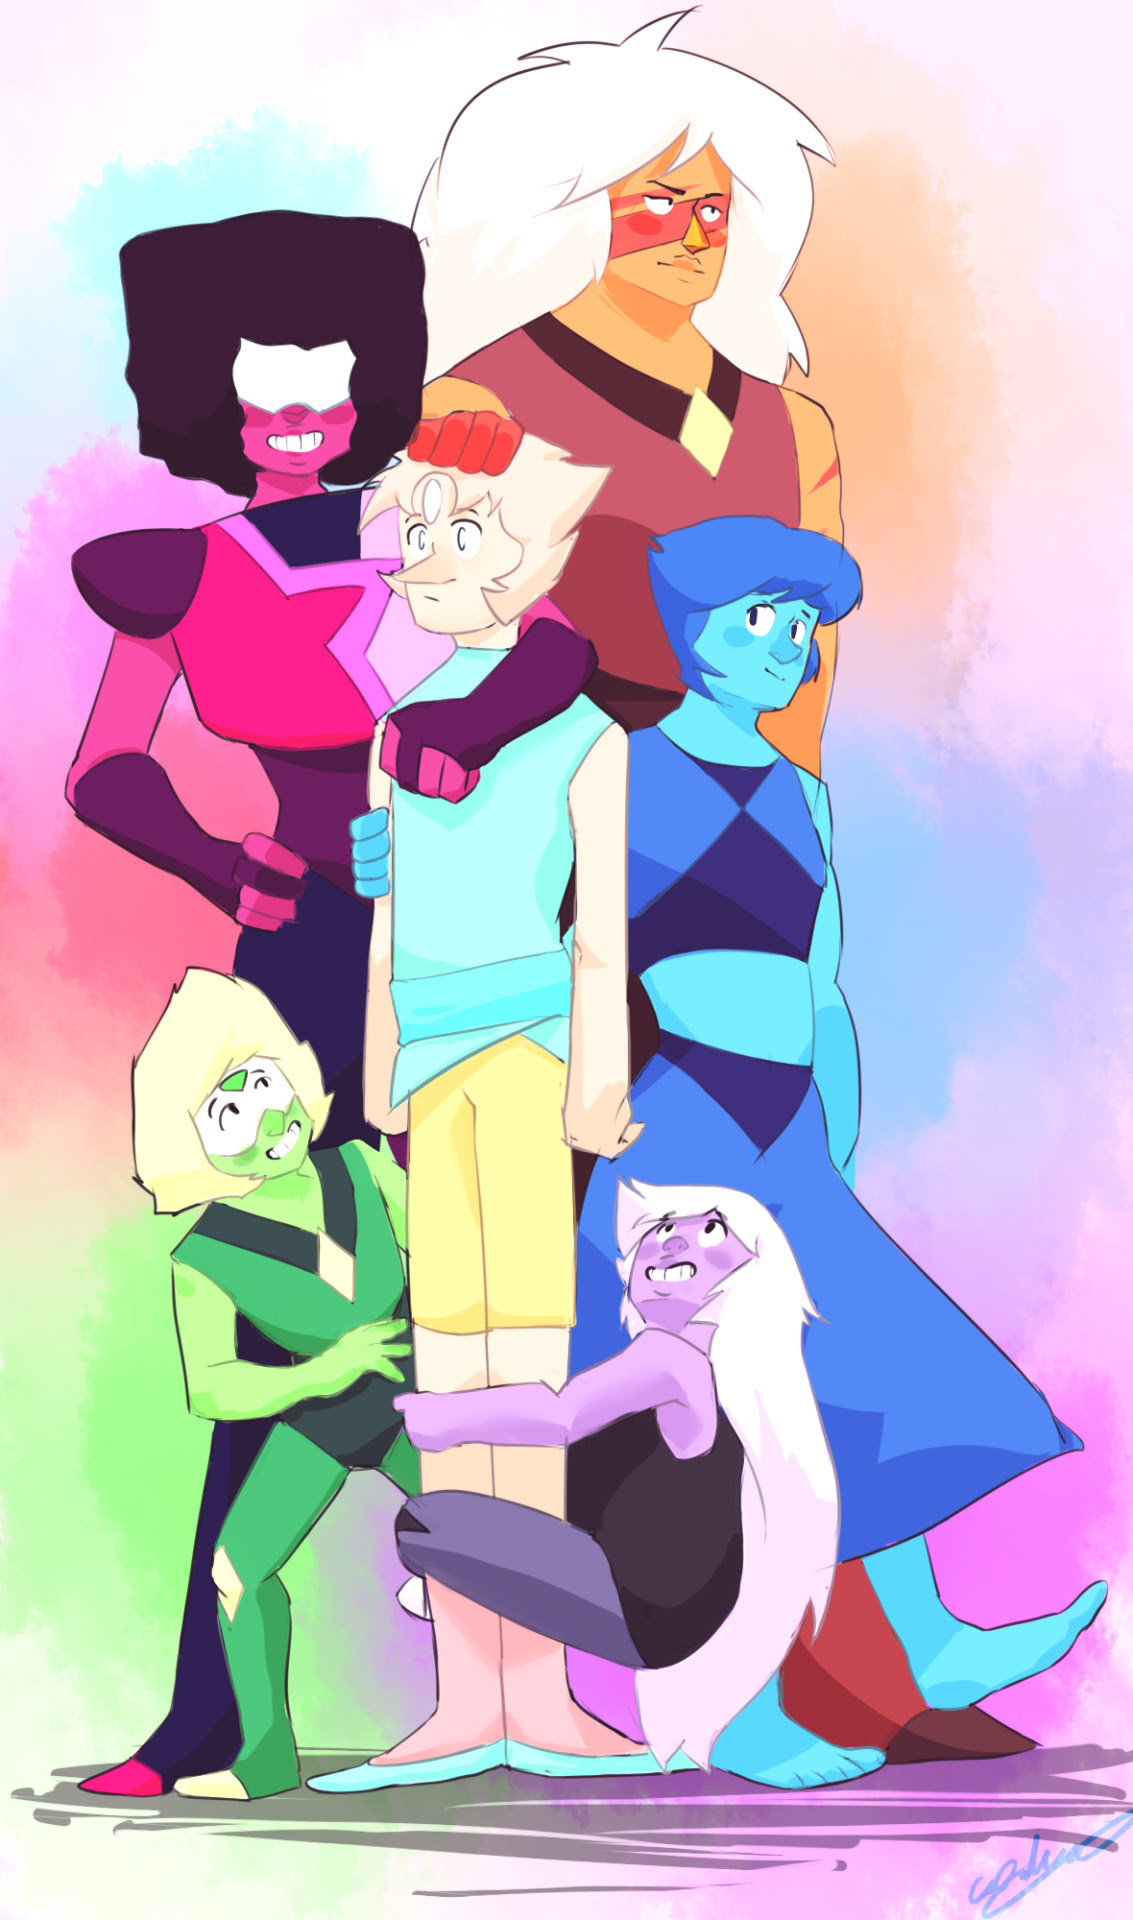 That moment when you accidentally ship everyone with one person. I don't regret it. Also sorry couldn't fit Bismuth.